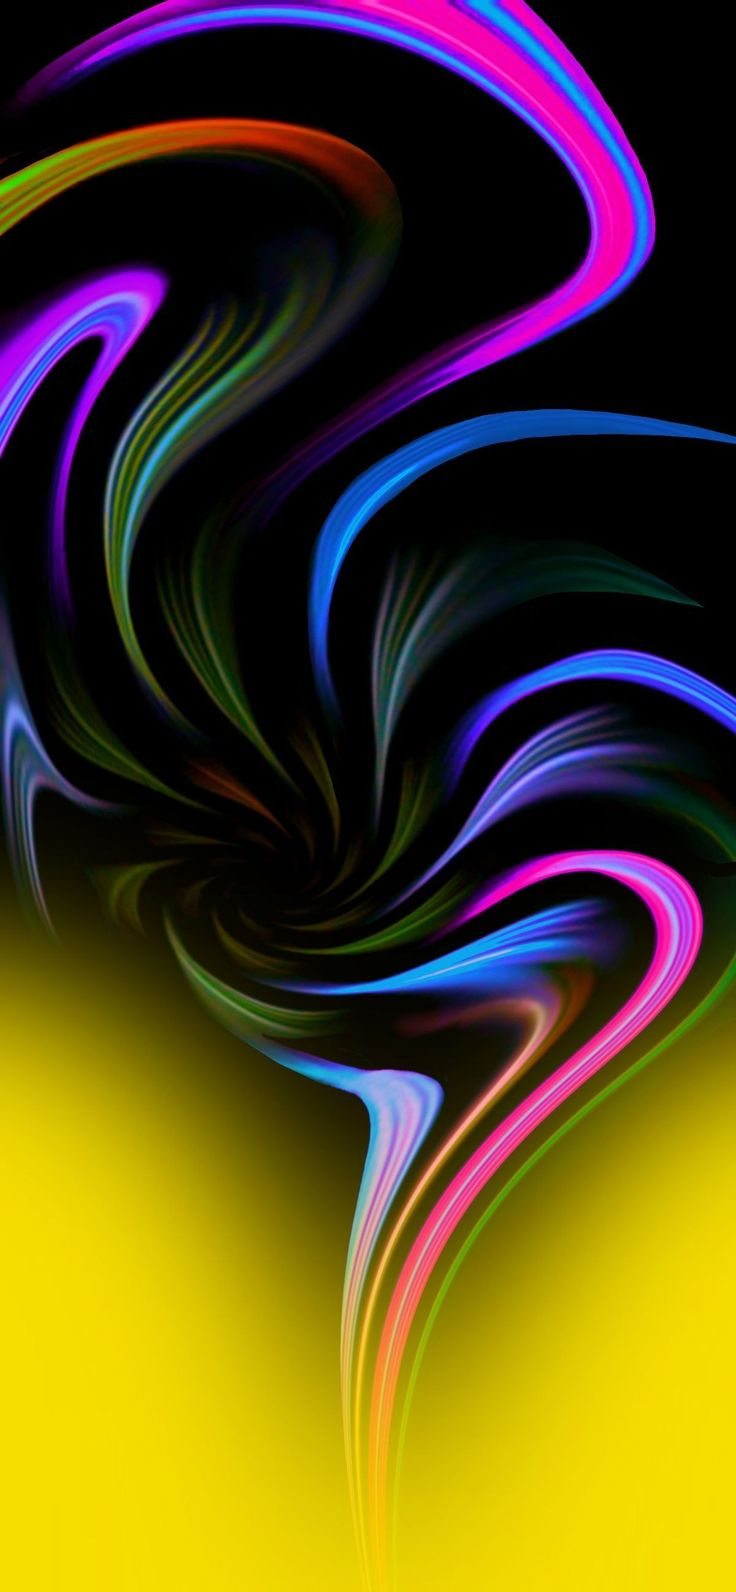 Abstract HD Wallpapers 214906213458785050 1